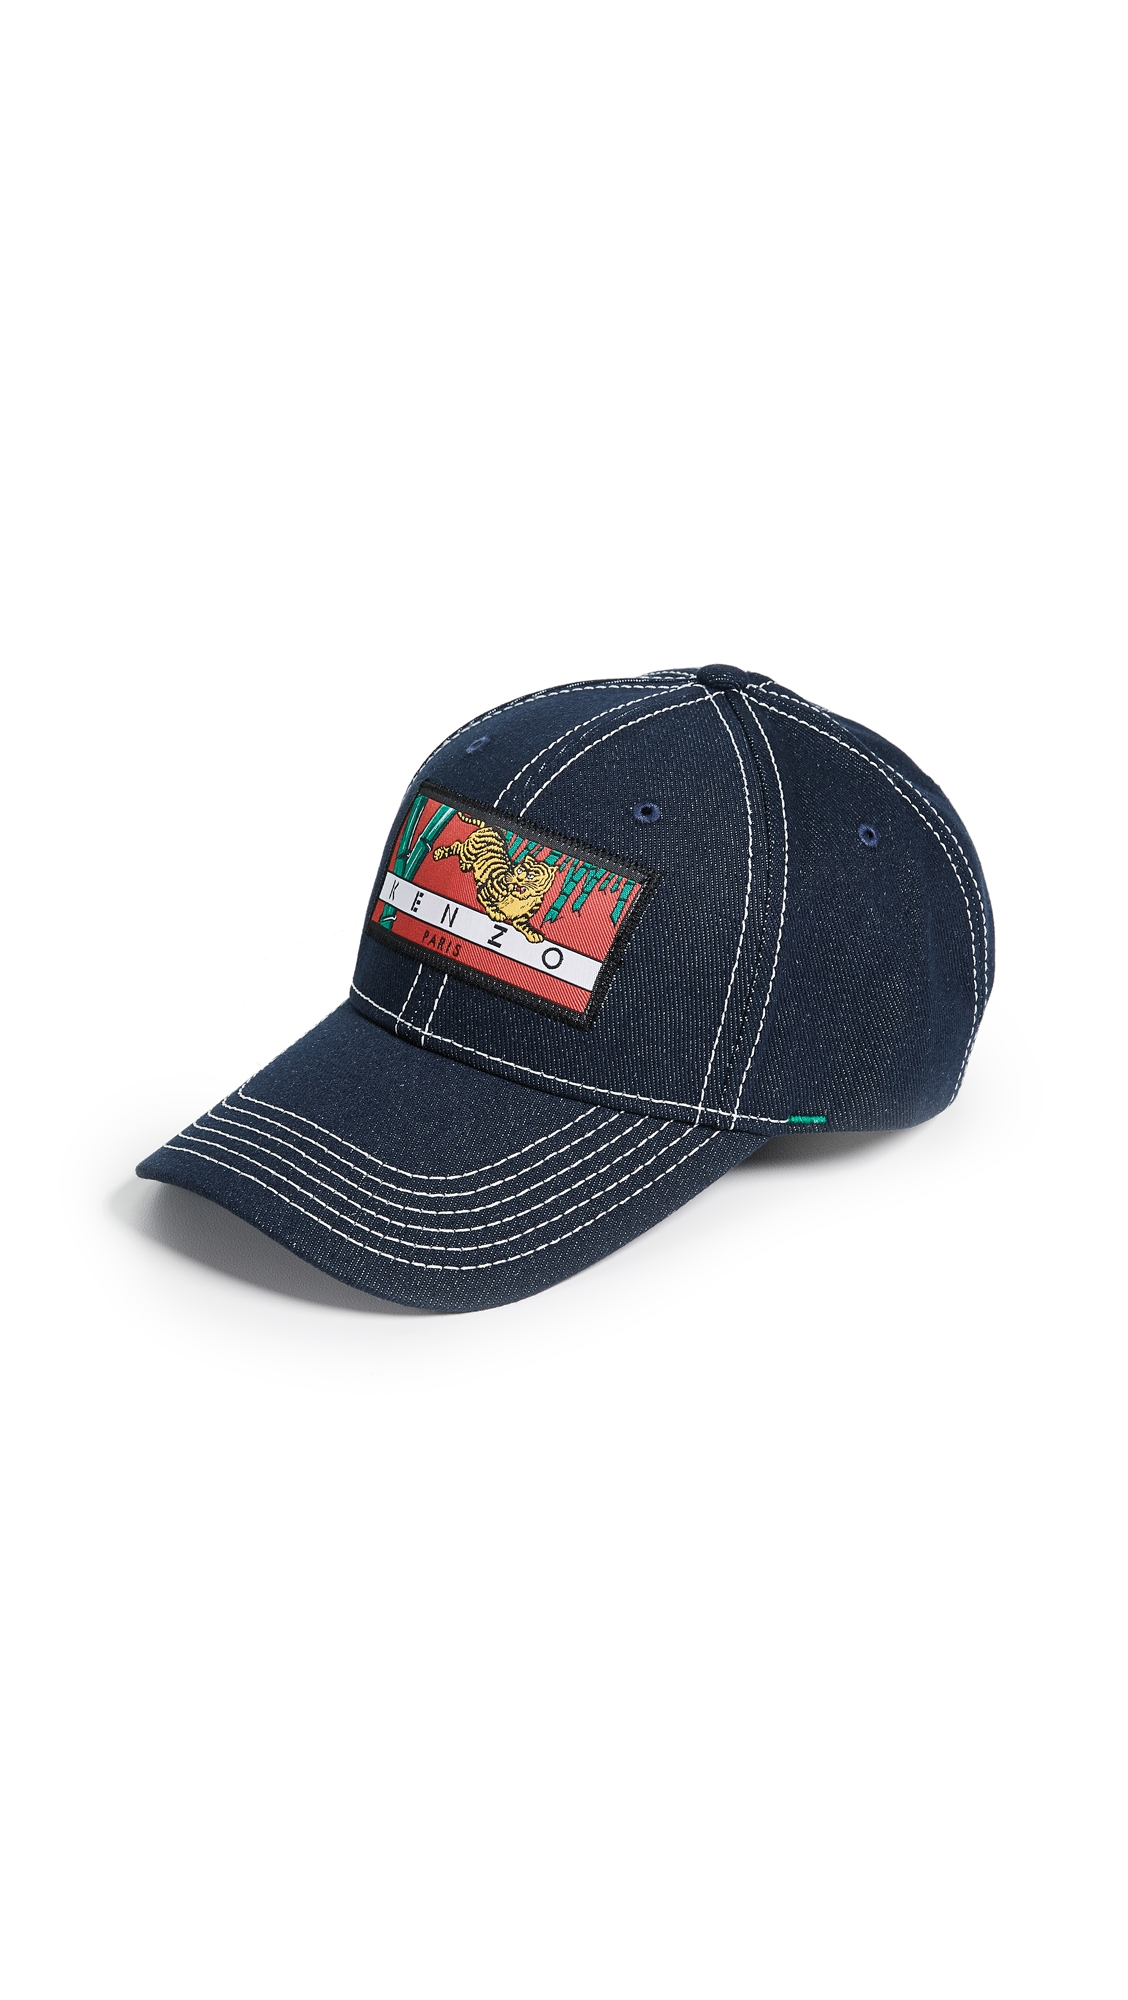 Kenzo Denim Bamboo Tiger Baseball Cap In Navy  92c73448f0bb